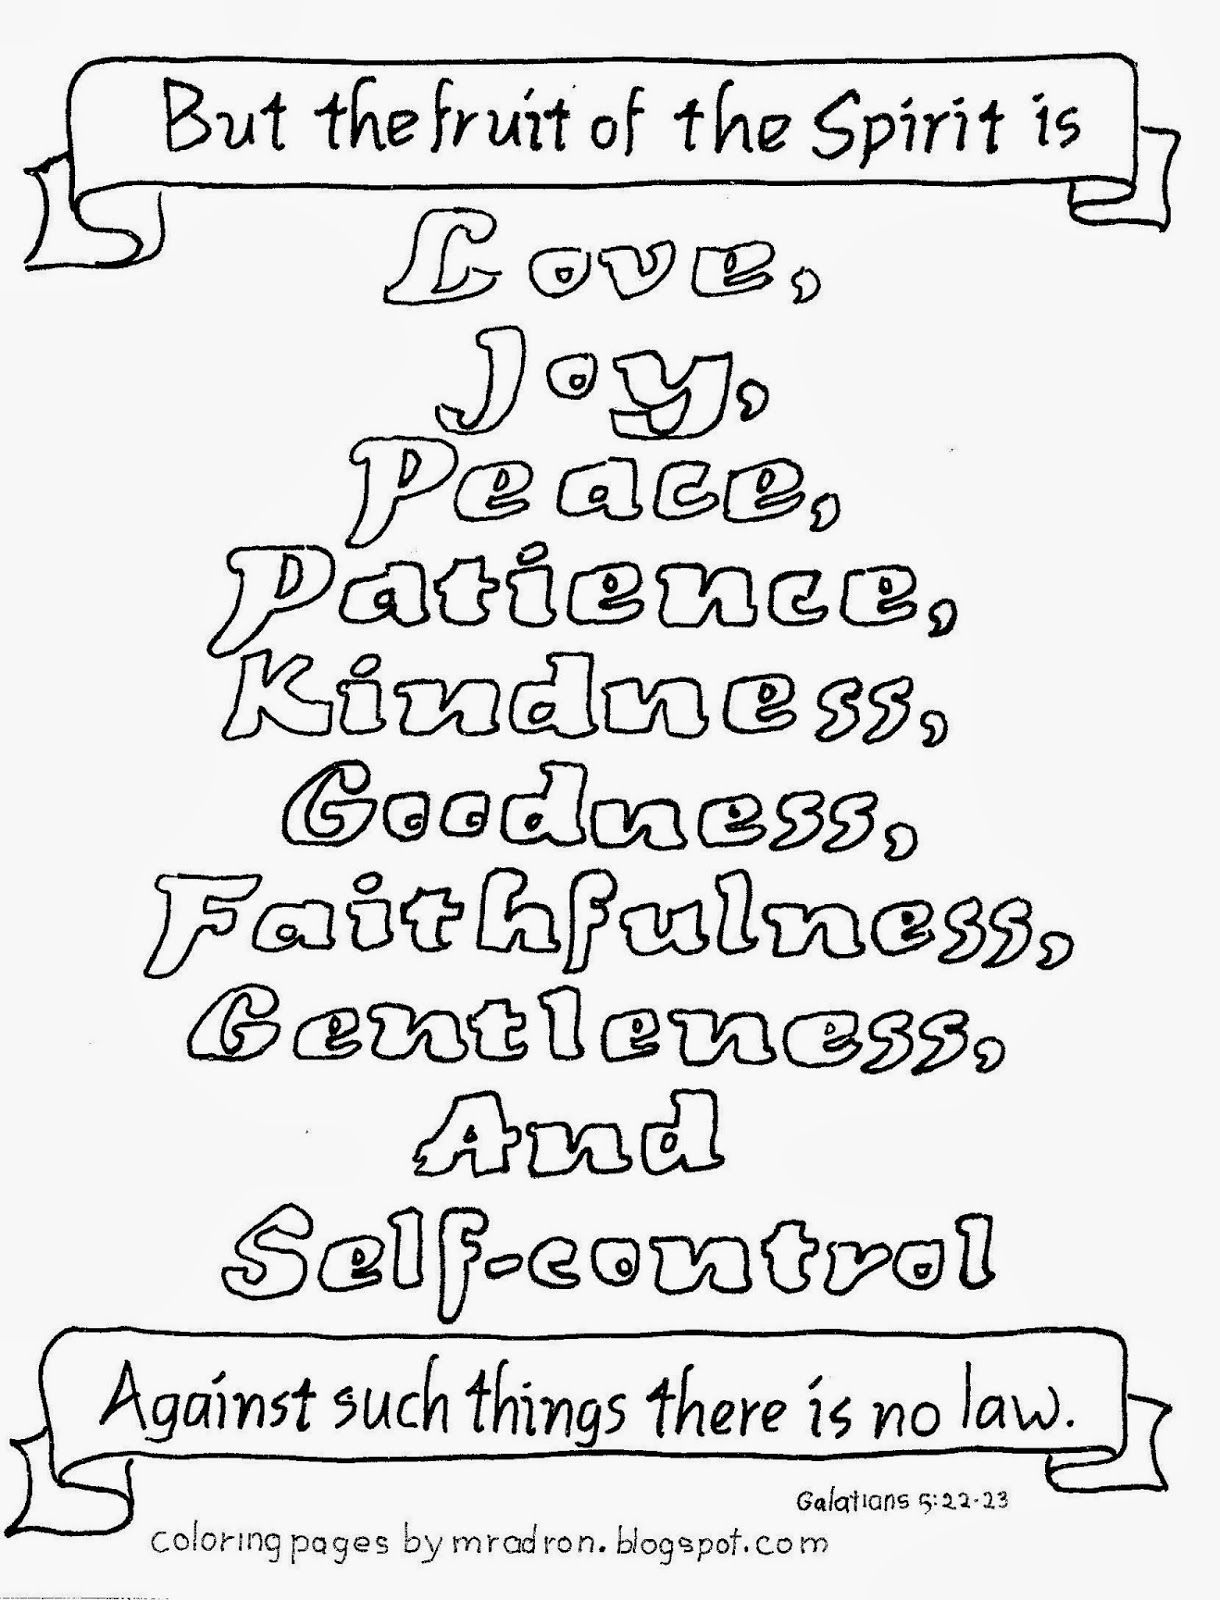 - Free Fruit Of The Spirit Coloring Page, Galatians 6:22-23 (With